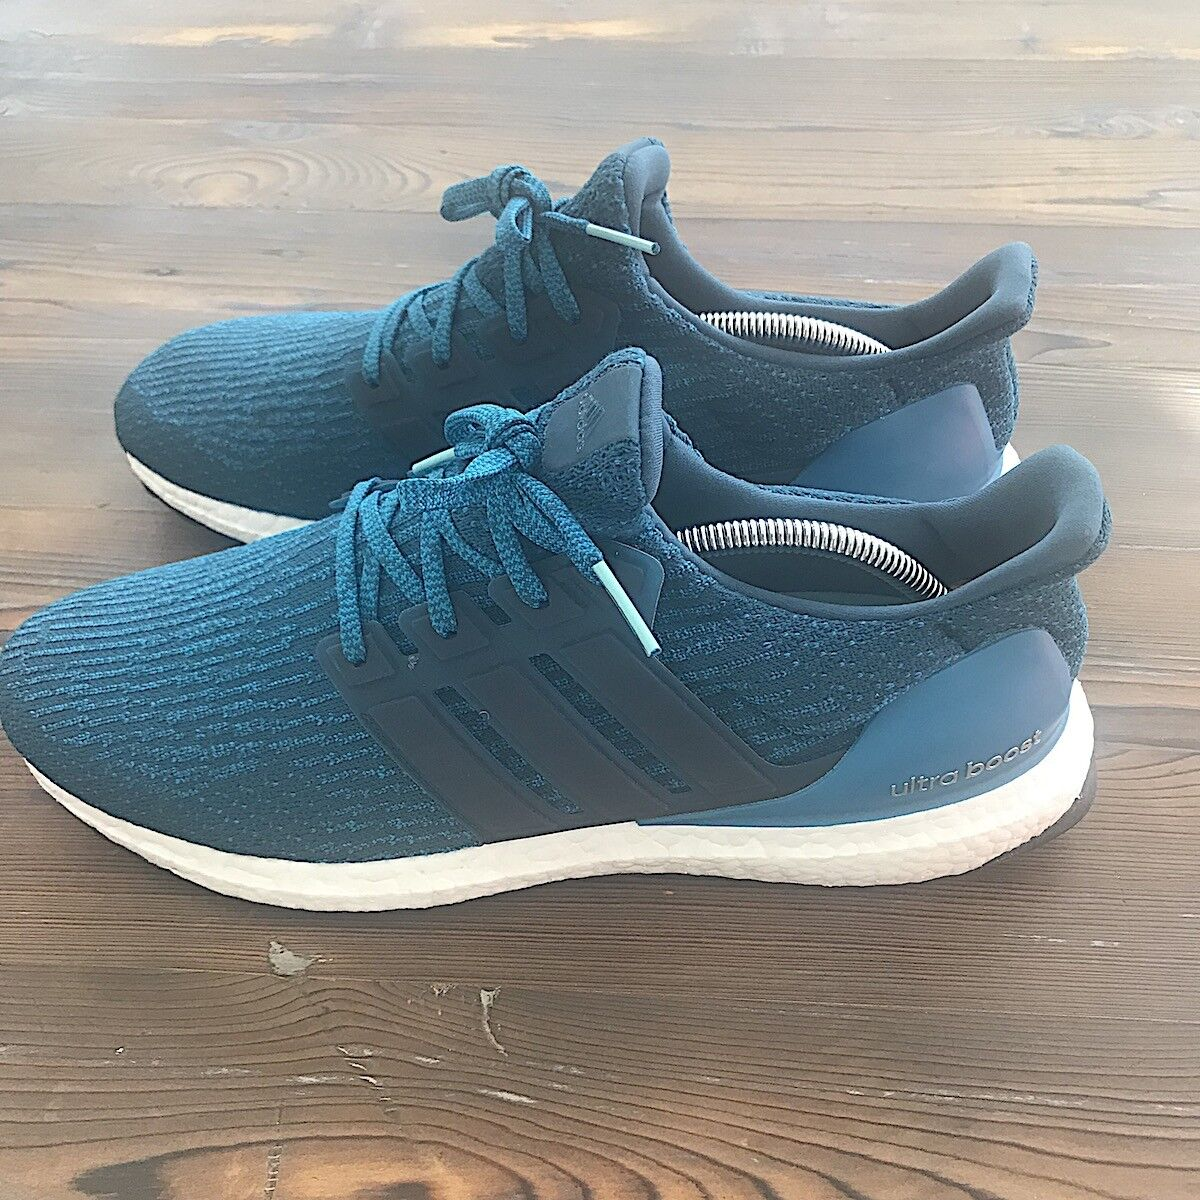 the latest ab470 8252d ... Adidas UltraBoost 3.0 Blue Petrol US 11.5       S82021 - SOLD OUT  e48ed0 ...